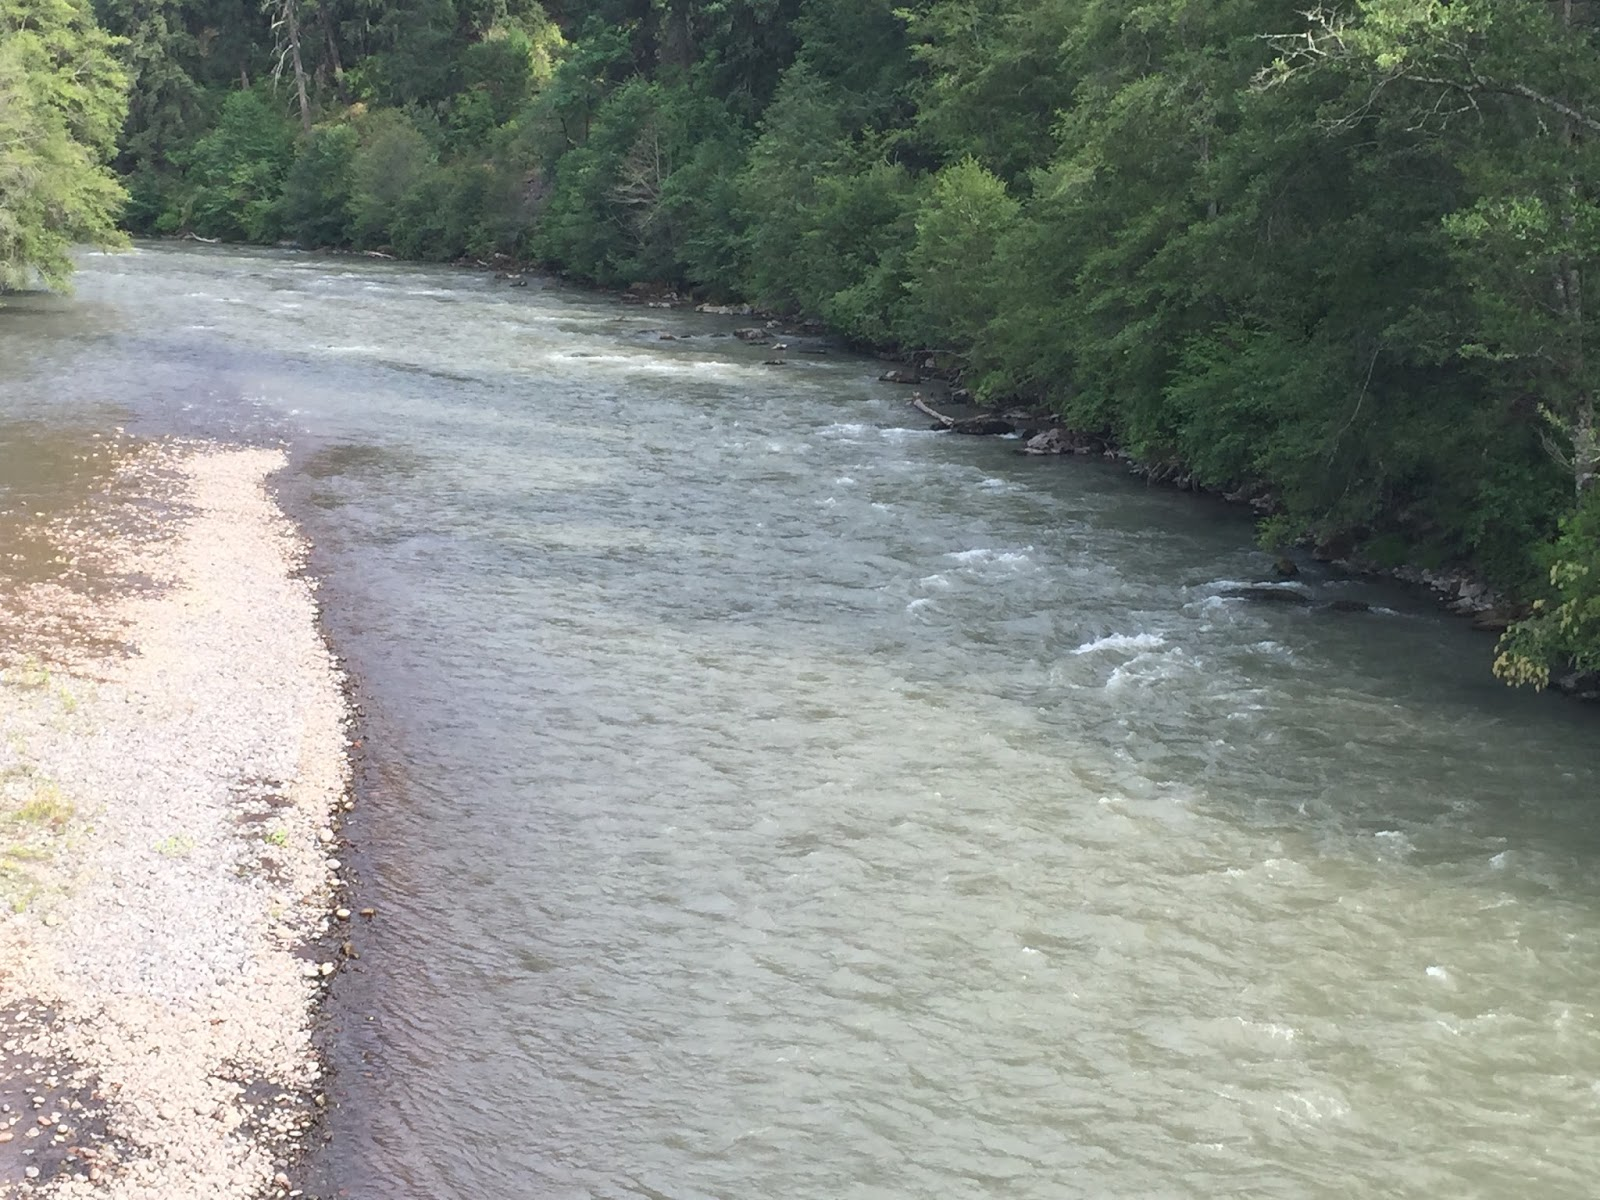 The evening hatch reports klickitat river report 7 12 15 for Klickitat river fishing report